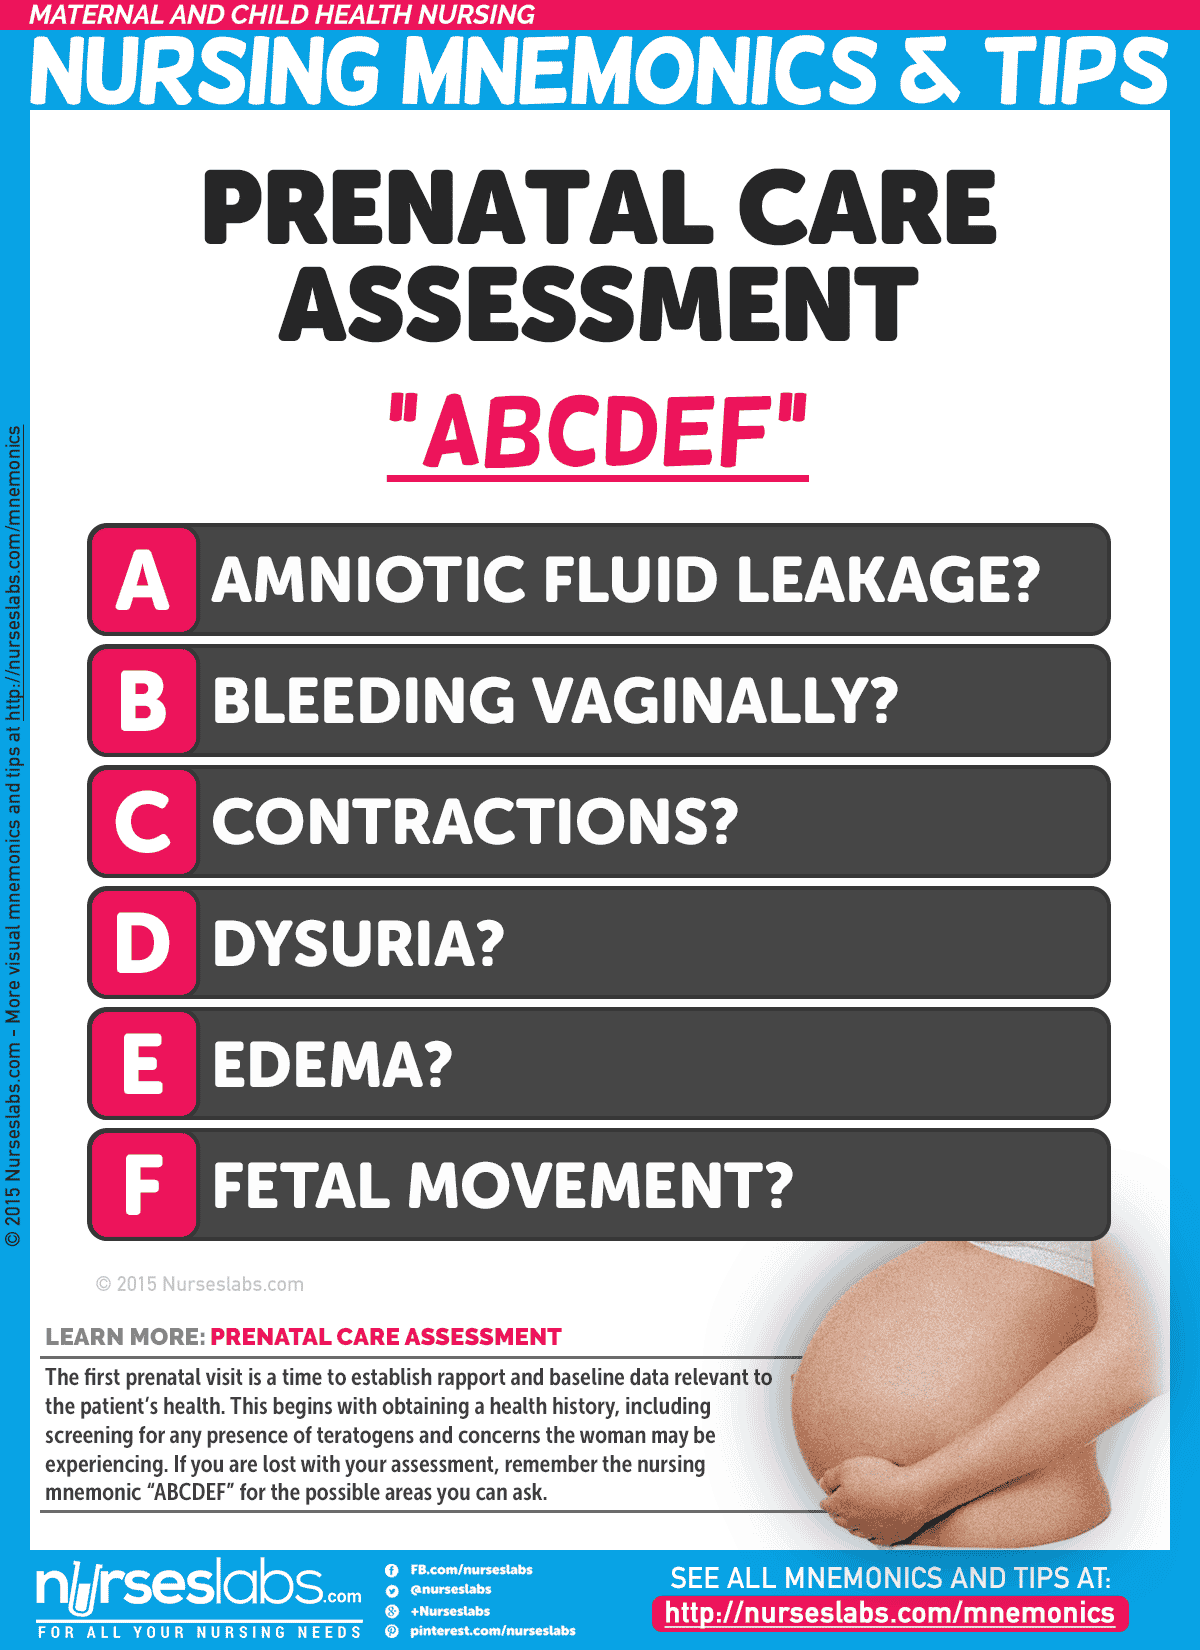 008-Prenatal Care Assessment (ABCDEF) Nursing Mnemonics and Tips